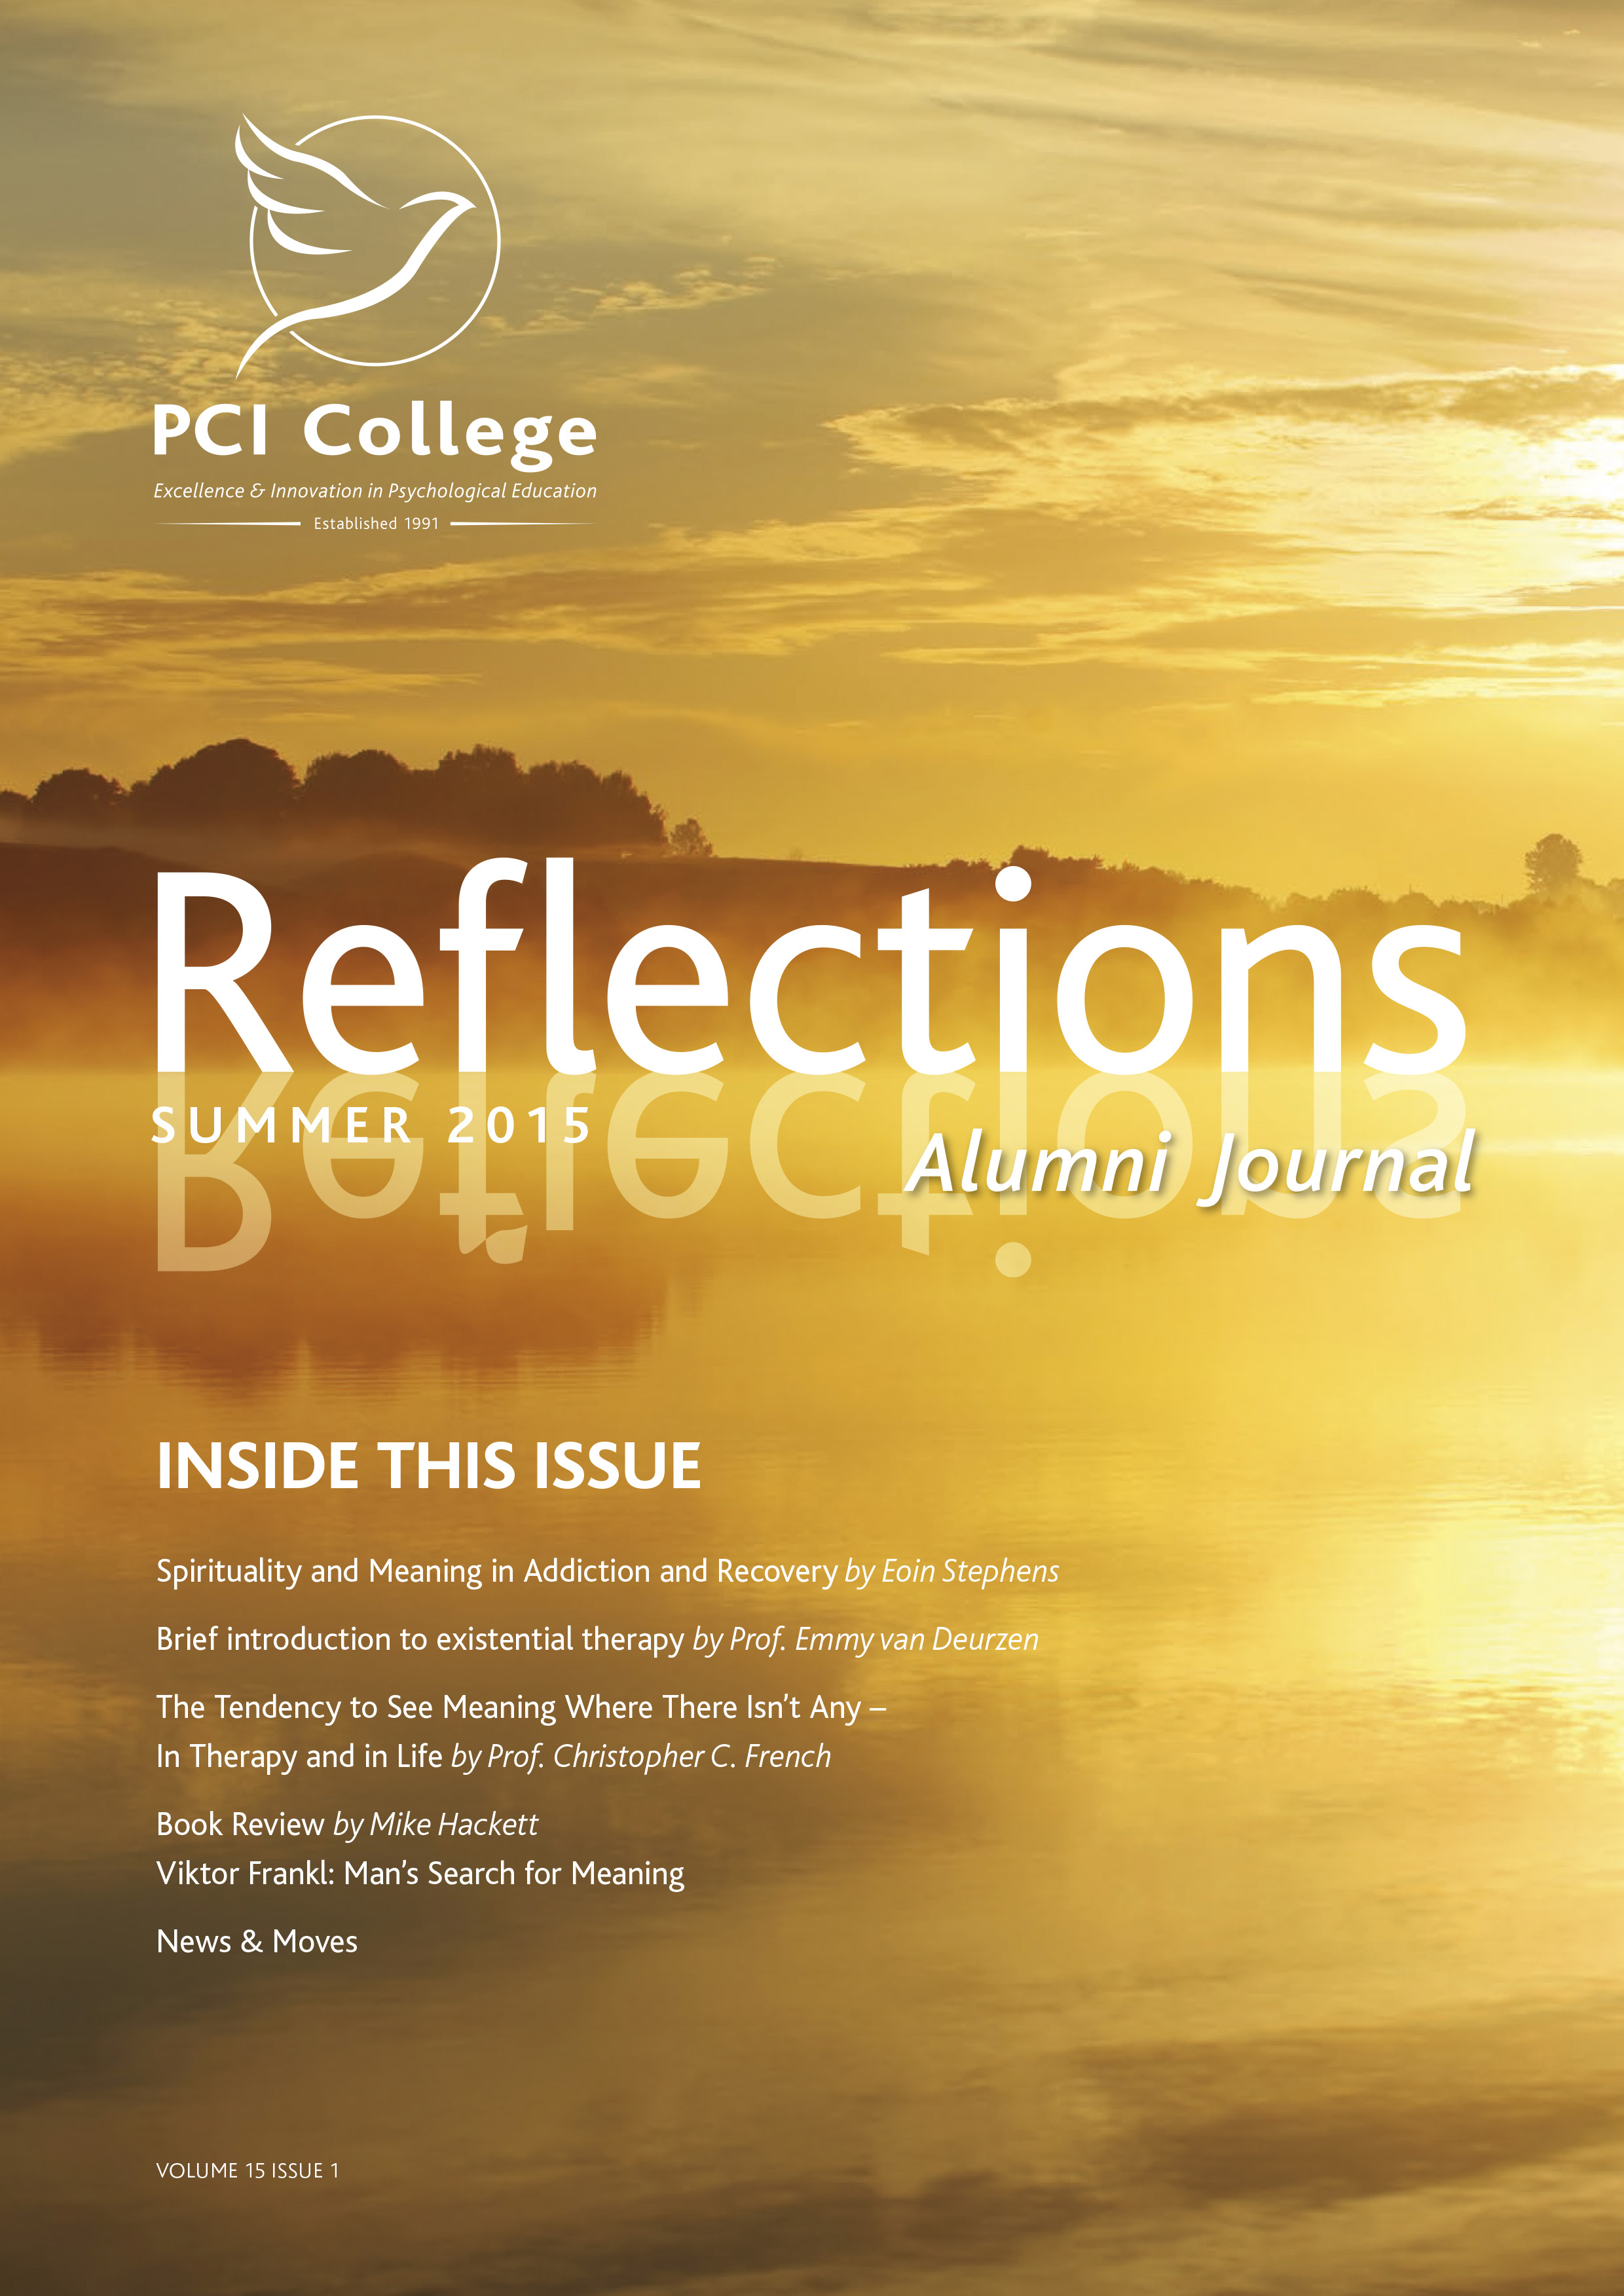 Reflections Cover 2015